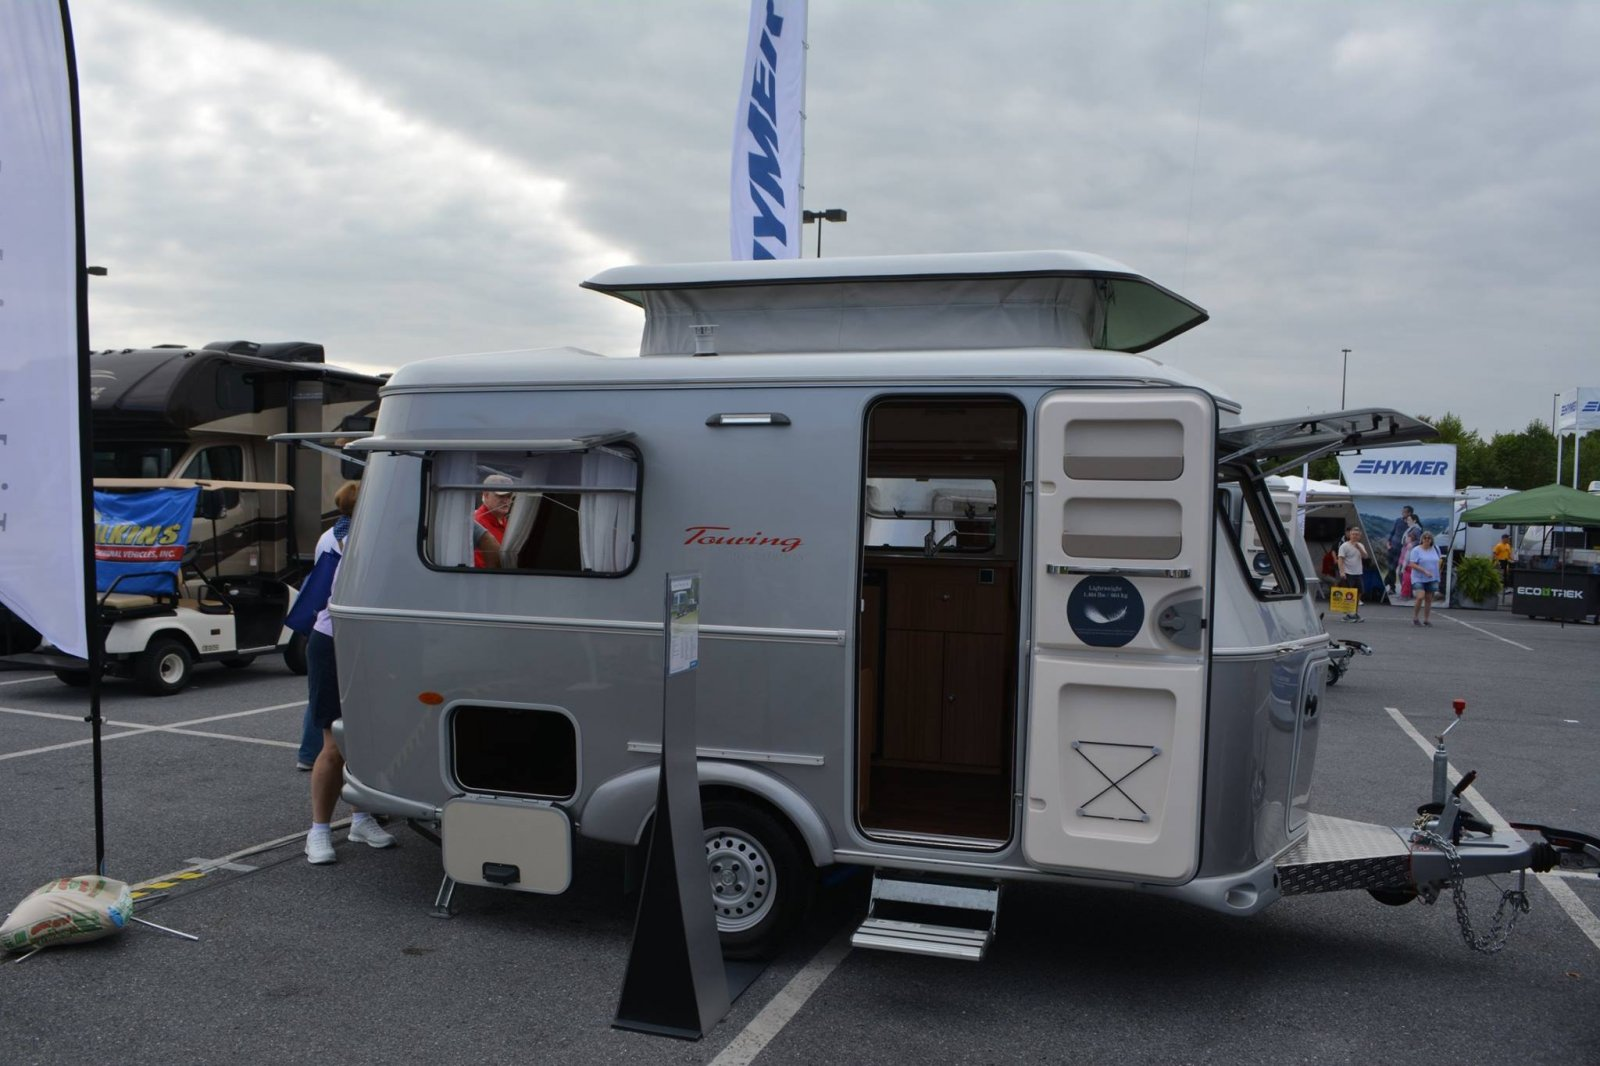 Click image for larger version  Name:hymer.jpg Views:30 Size:209.9 KB ID:271973